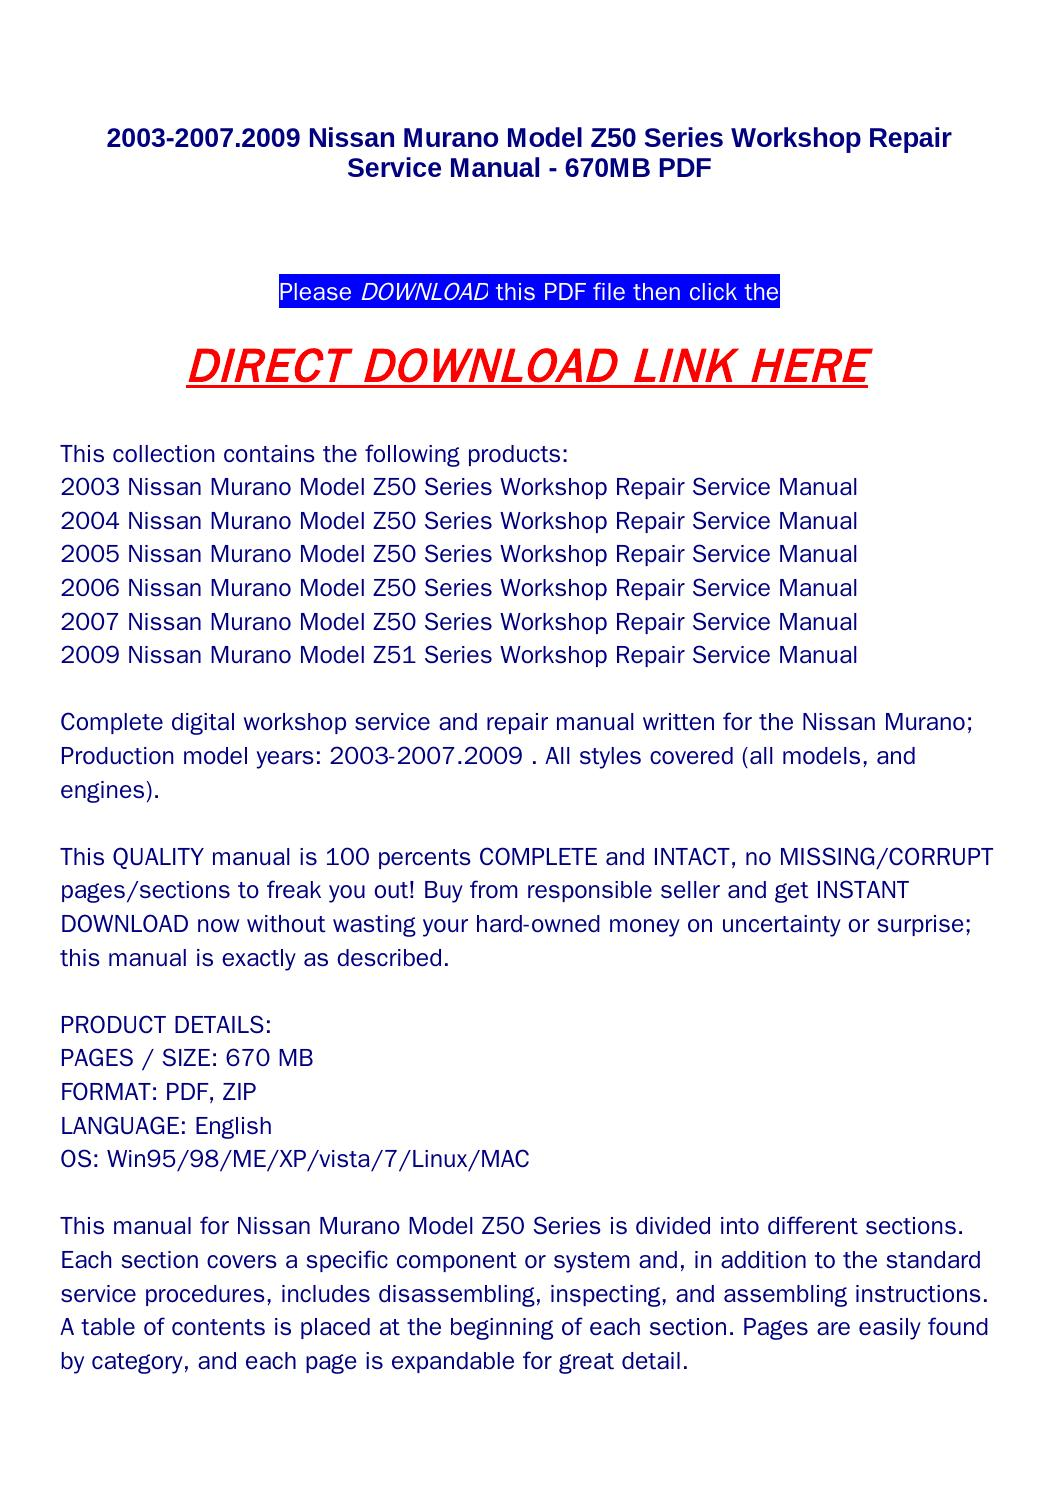 2003 2007 2009 nissan murano model z50 series workshop repair service manual  670mb pdf by jenny - issuu